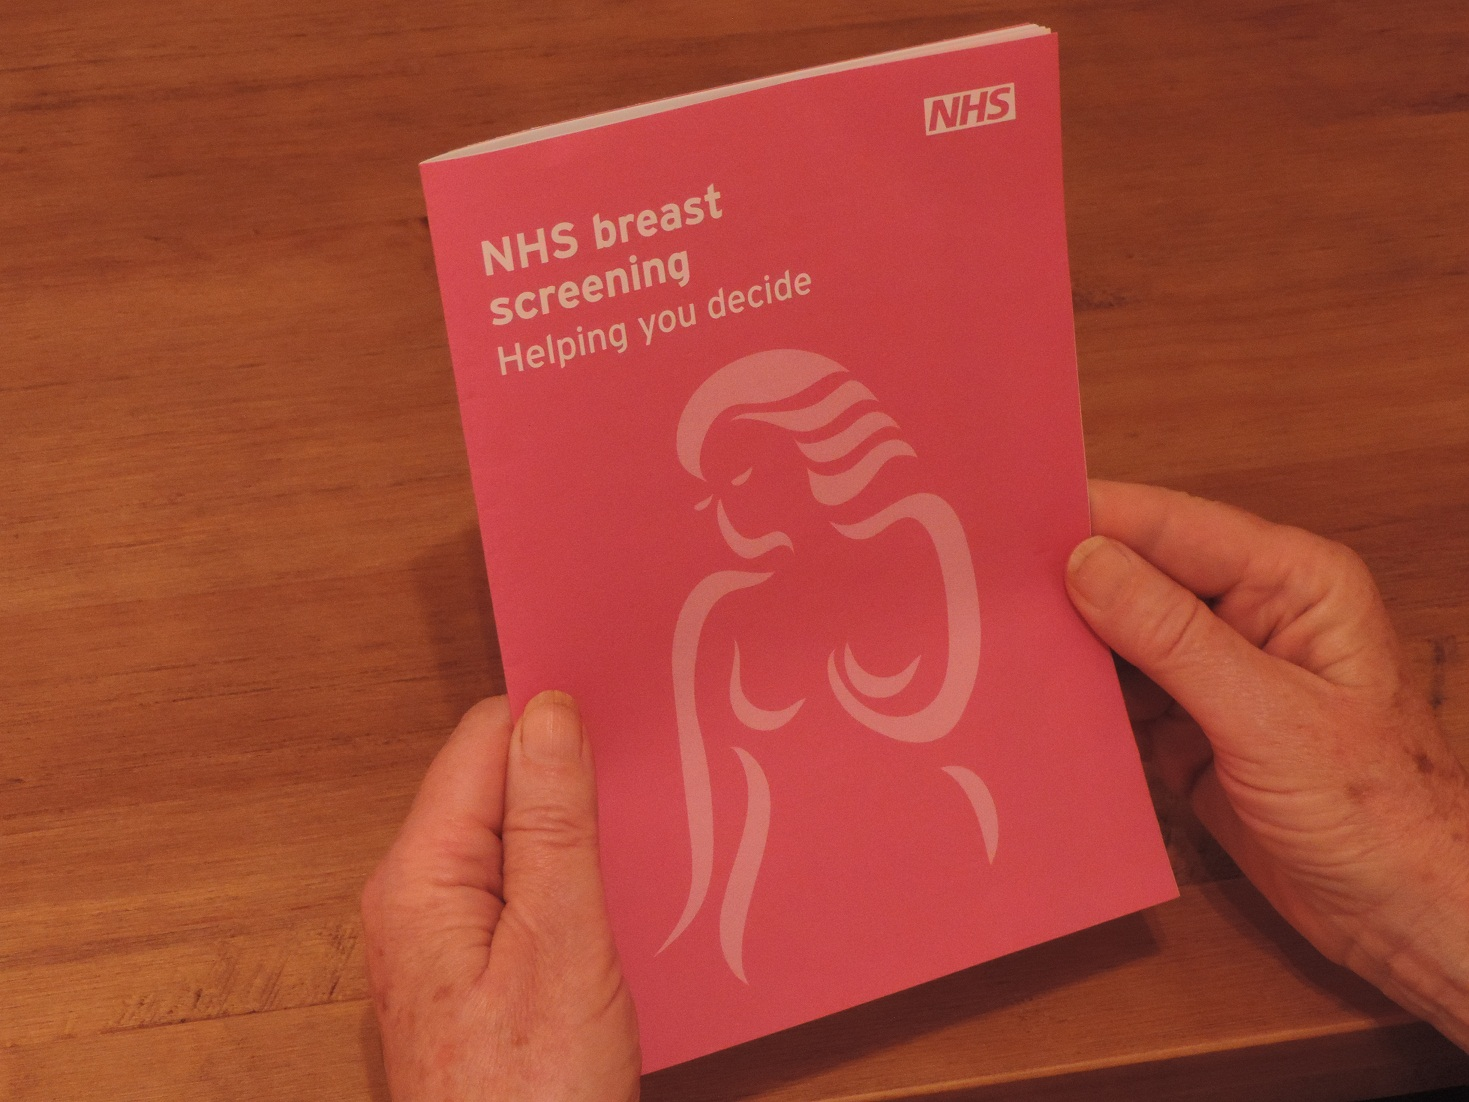 A picture of someone's hands holding an NHS breast screening leaflet.